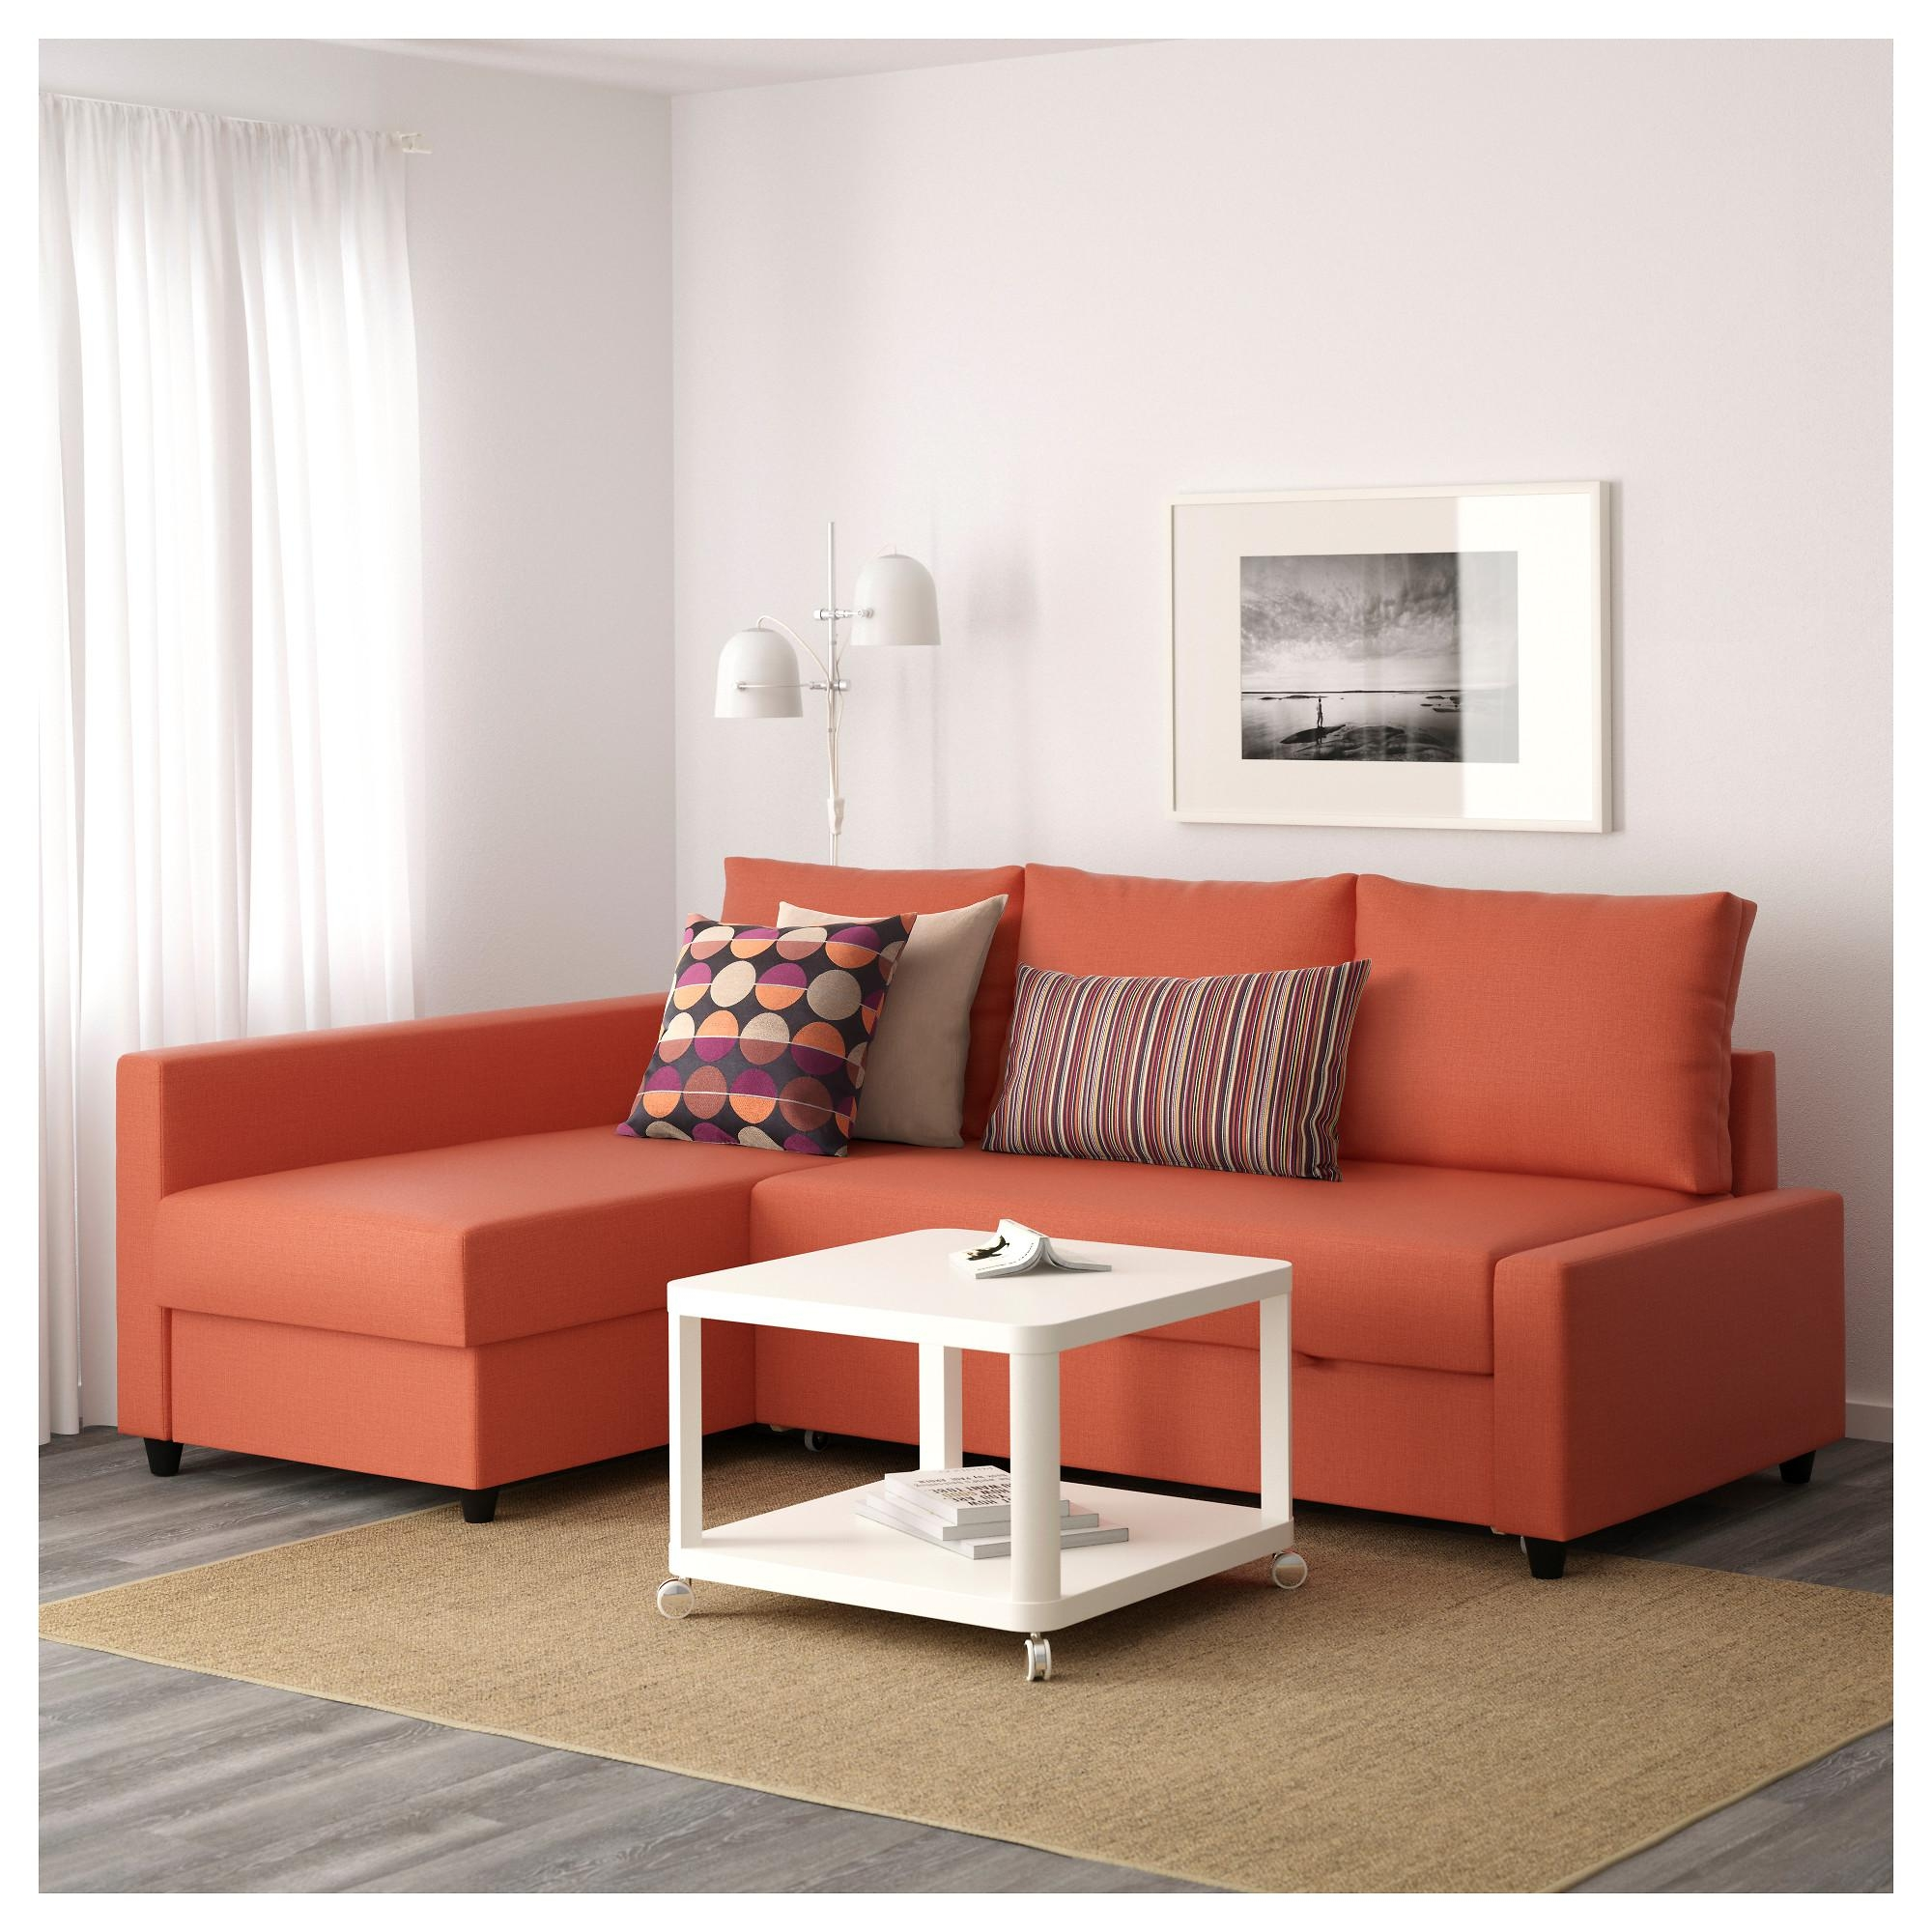 Orange ikea sofa tylosand sofa bed from ikea apartment for Ikea corner sofa